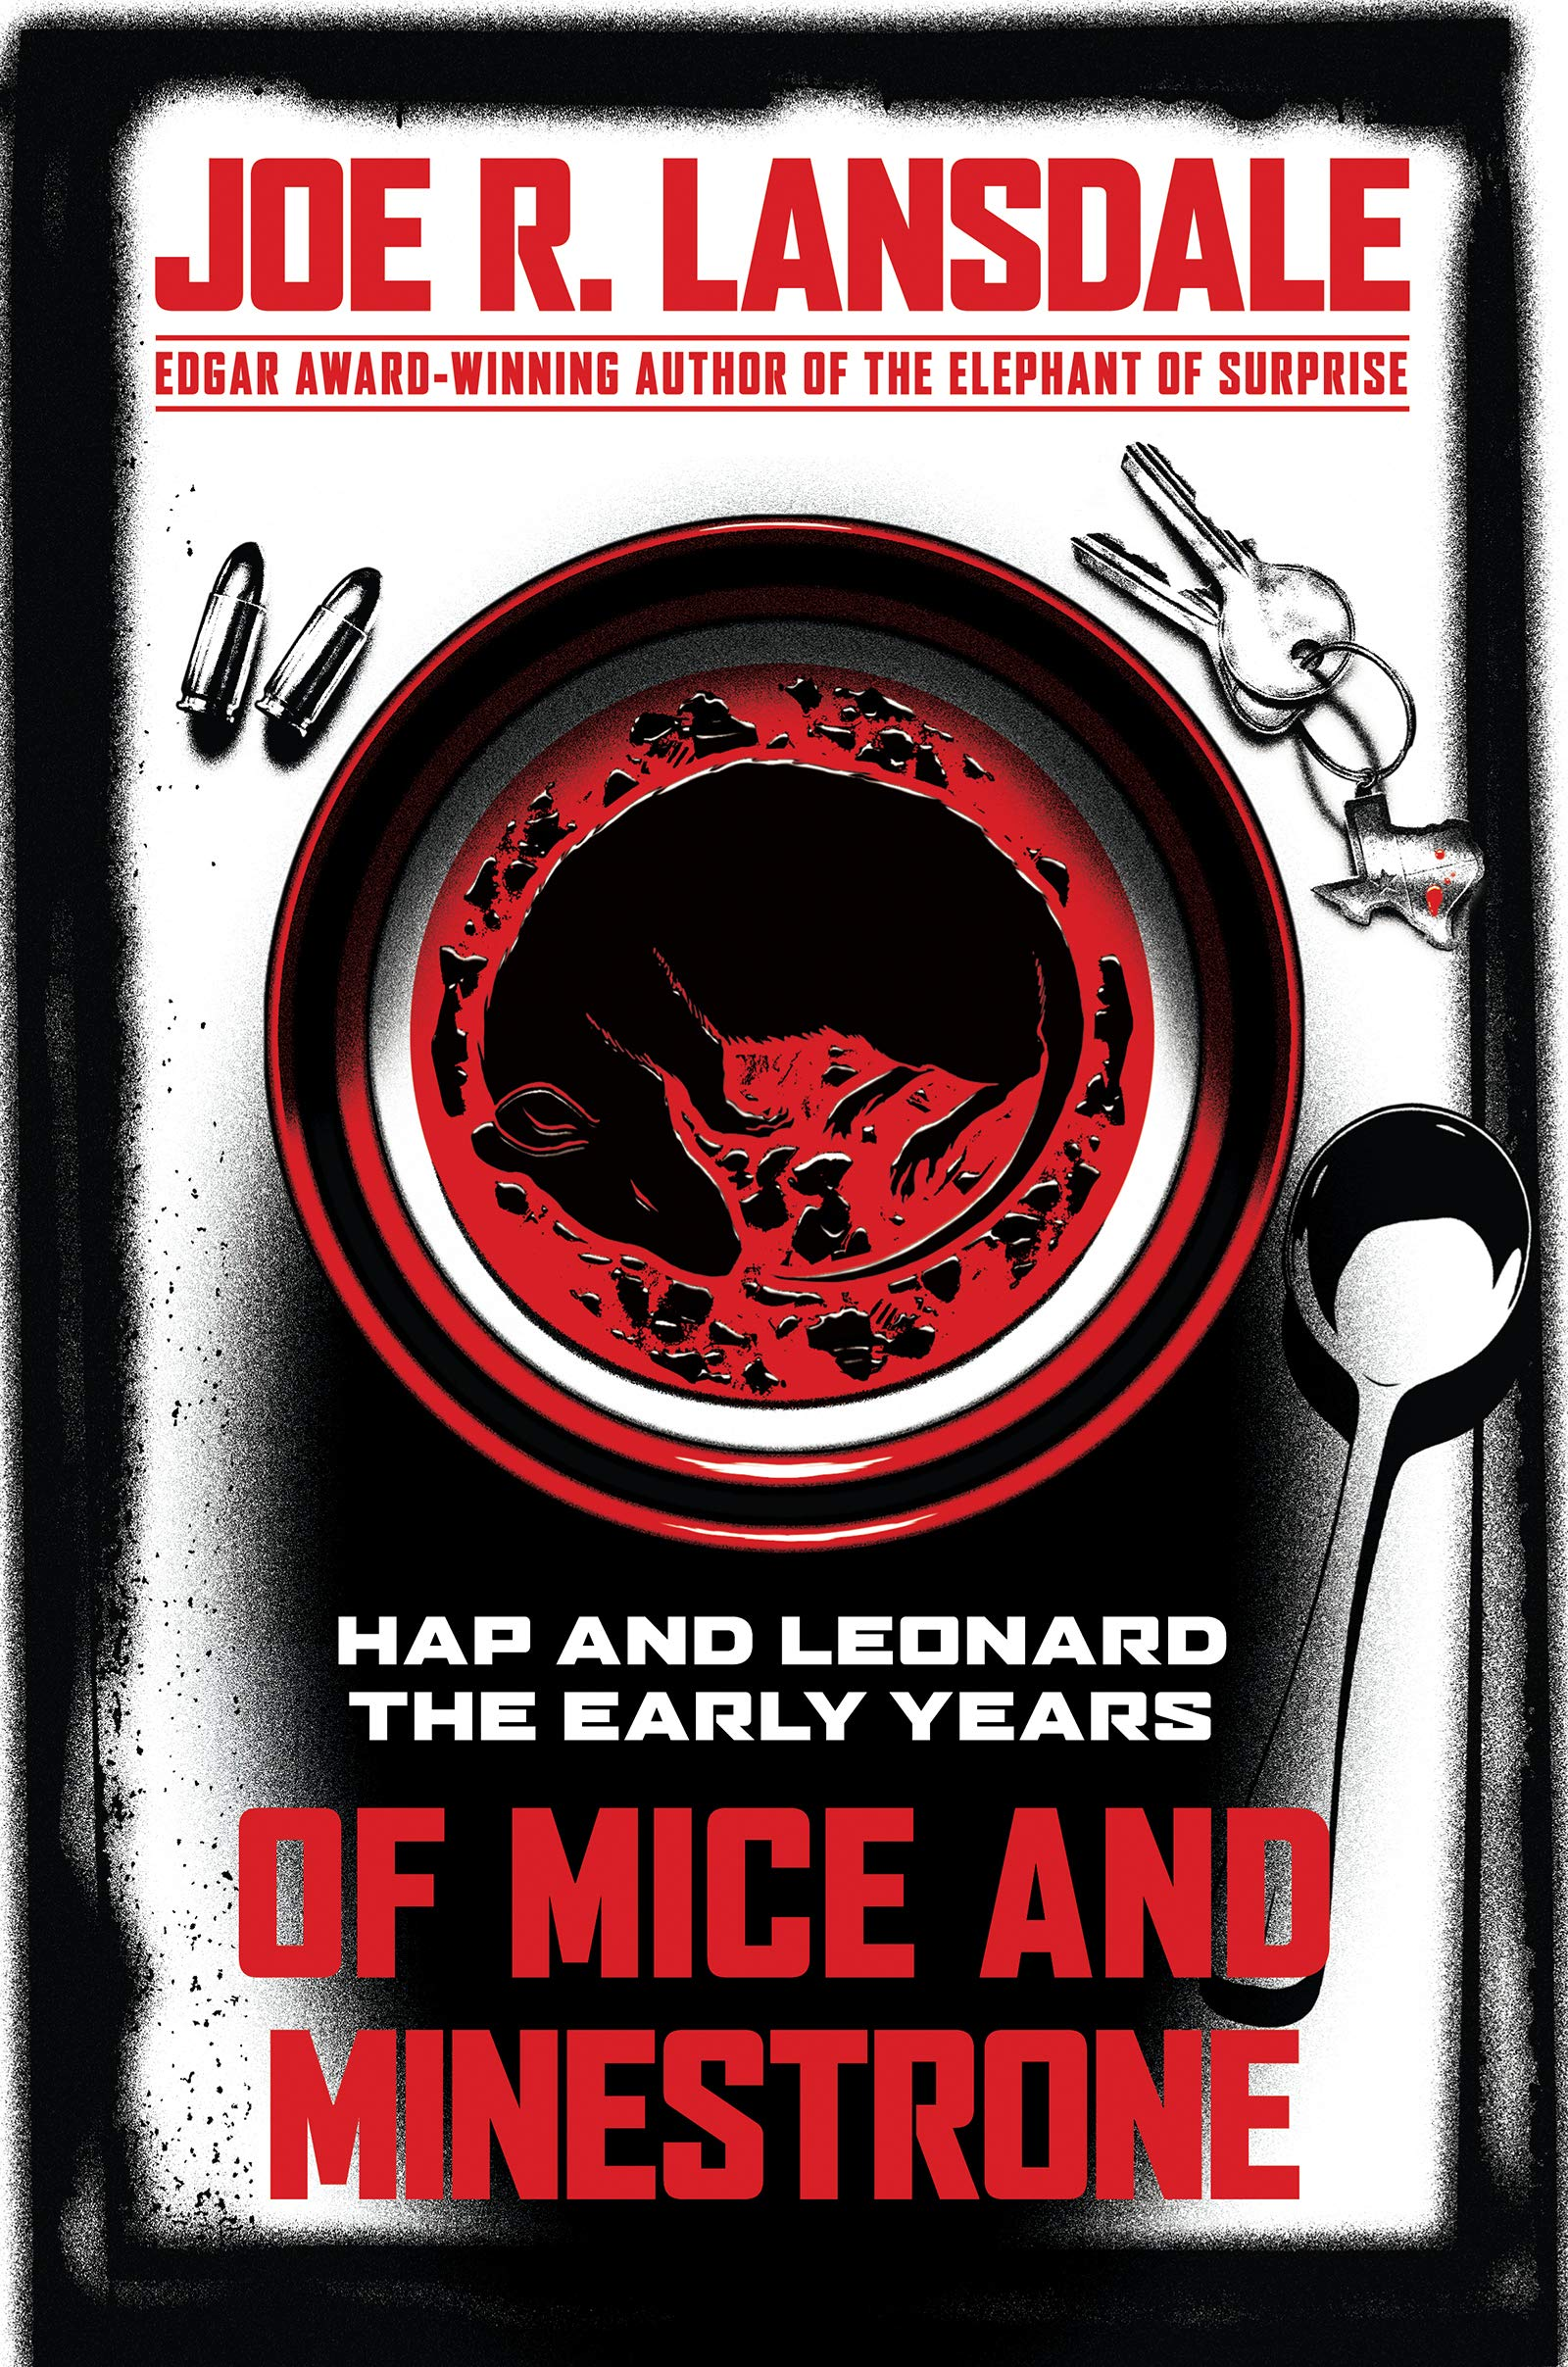 Of Mice and Minestrone: Hap and Leonard: The Early Years